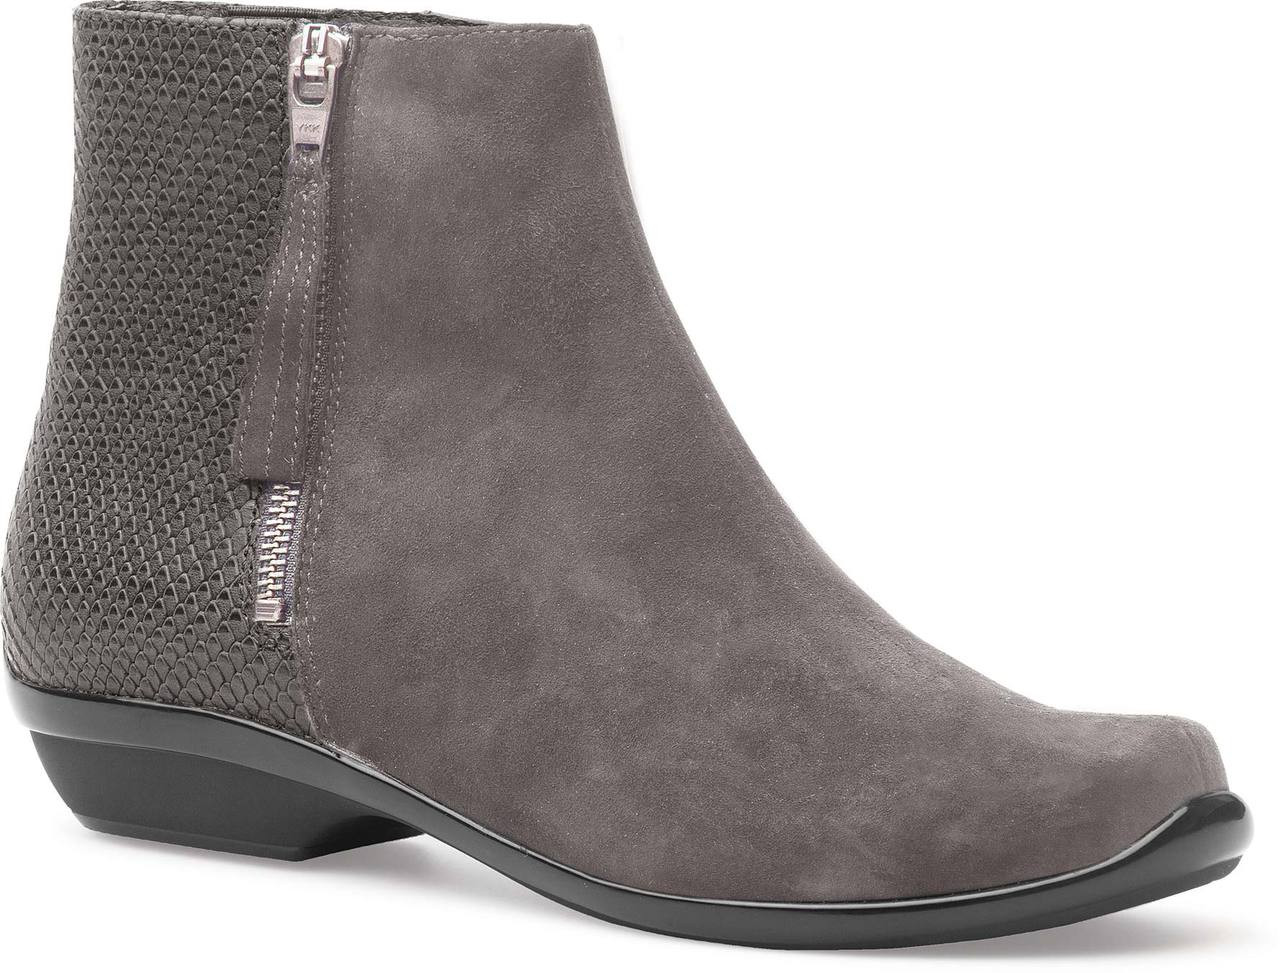 Grey Kid Suede Leather